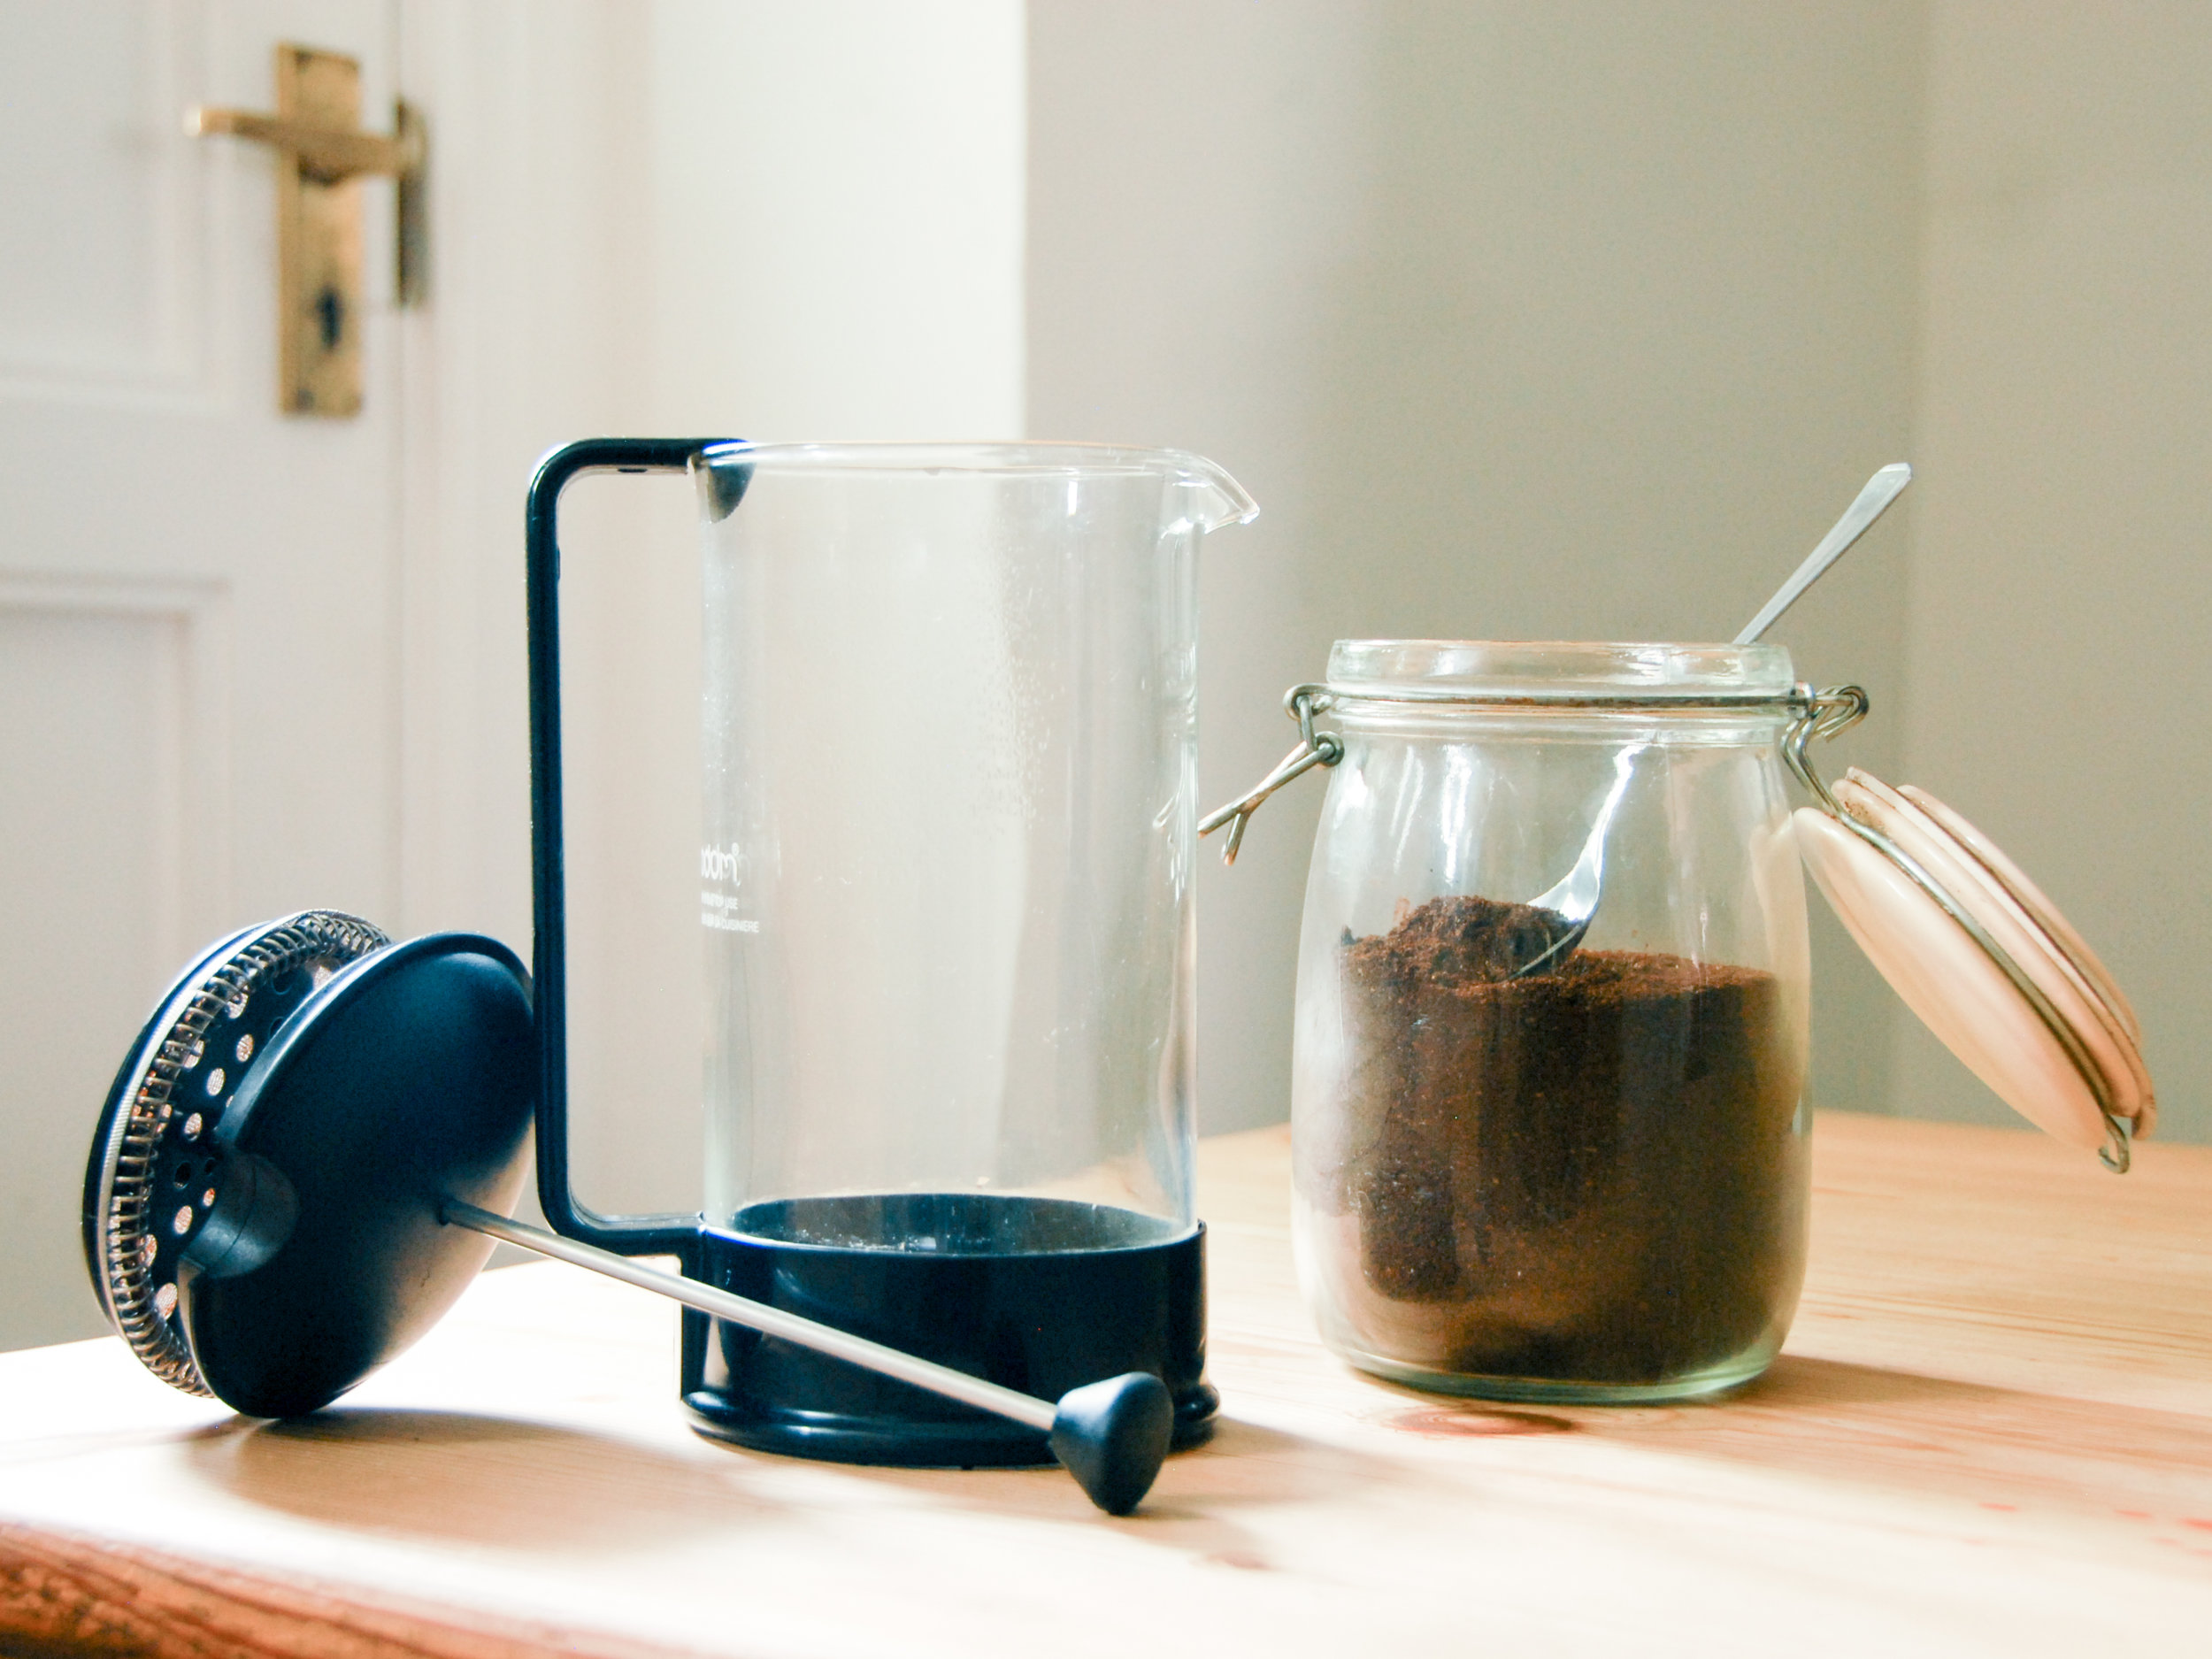 How to Make the Perfect Cup of French Press Coffee for One - French press is an elegant, zero waste method of making coffee. If you're on the go, pour it into a reusable coffee cup!